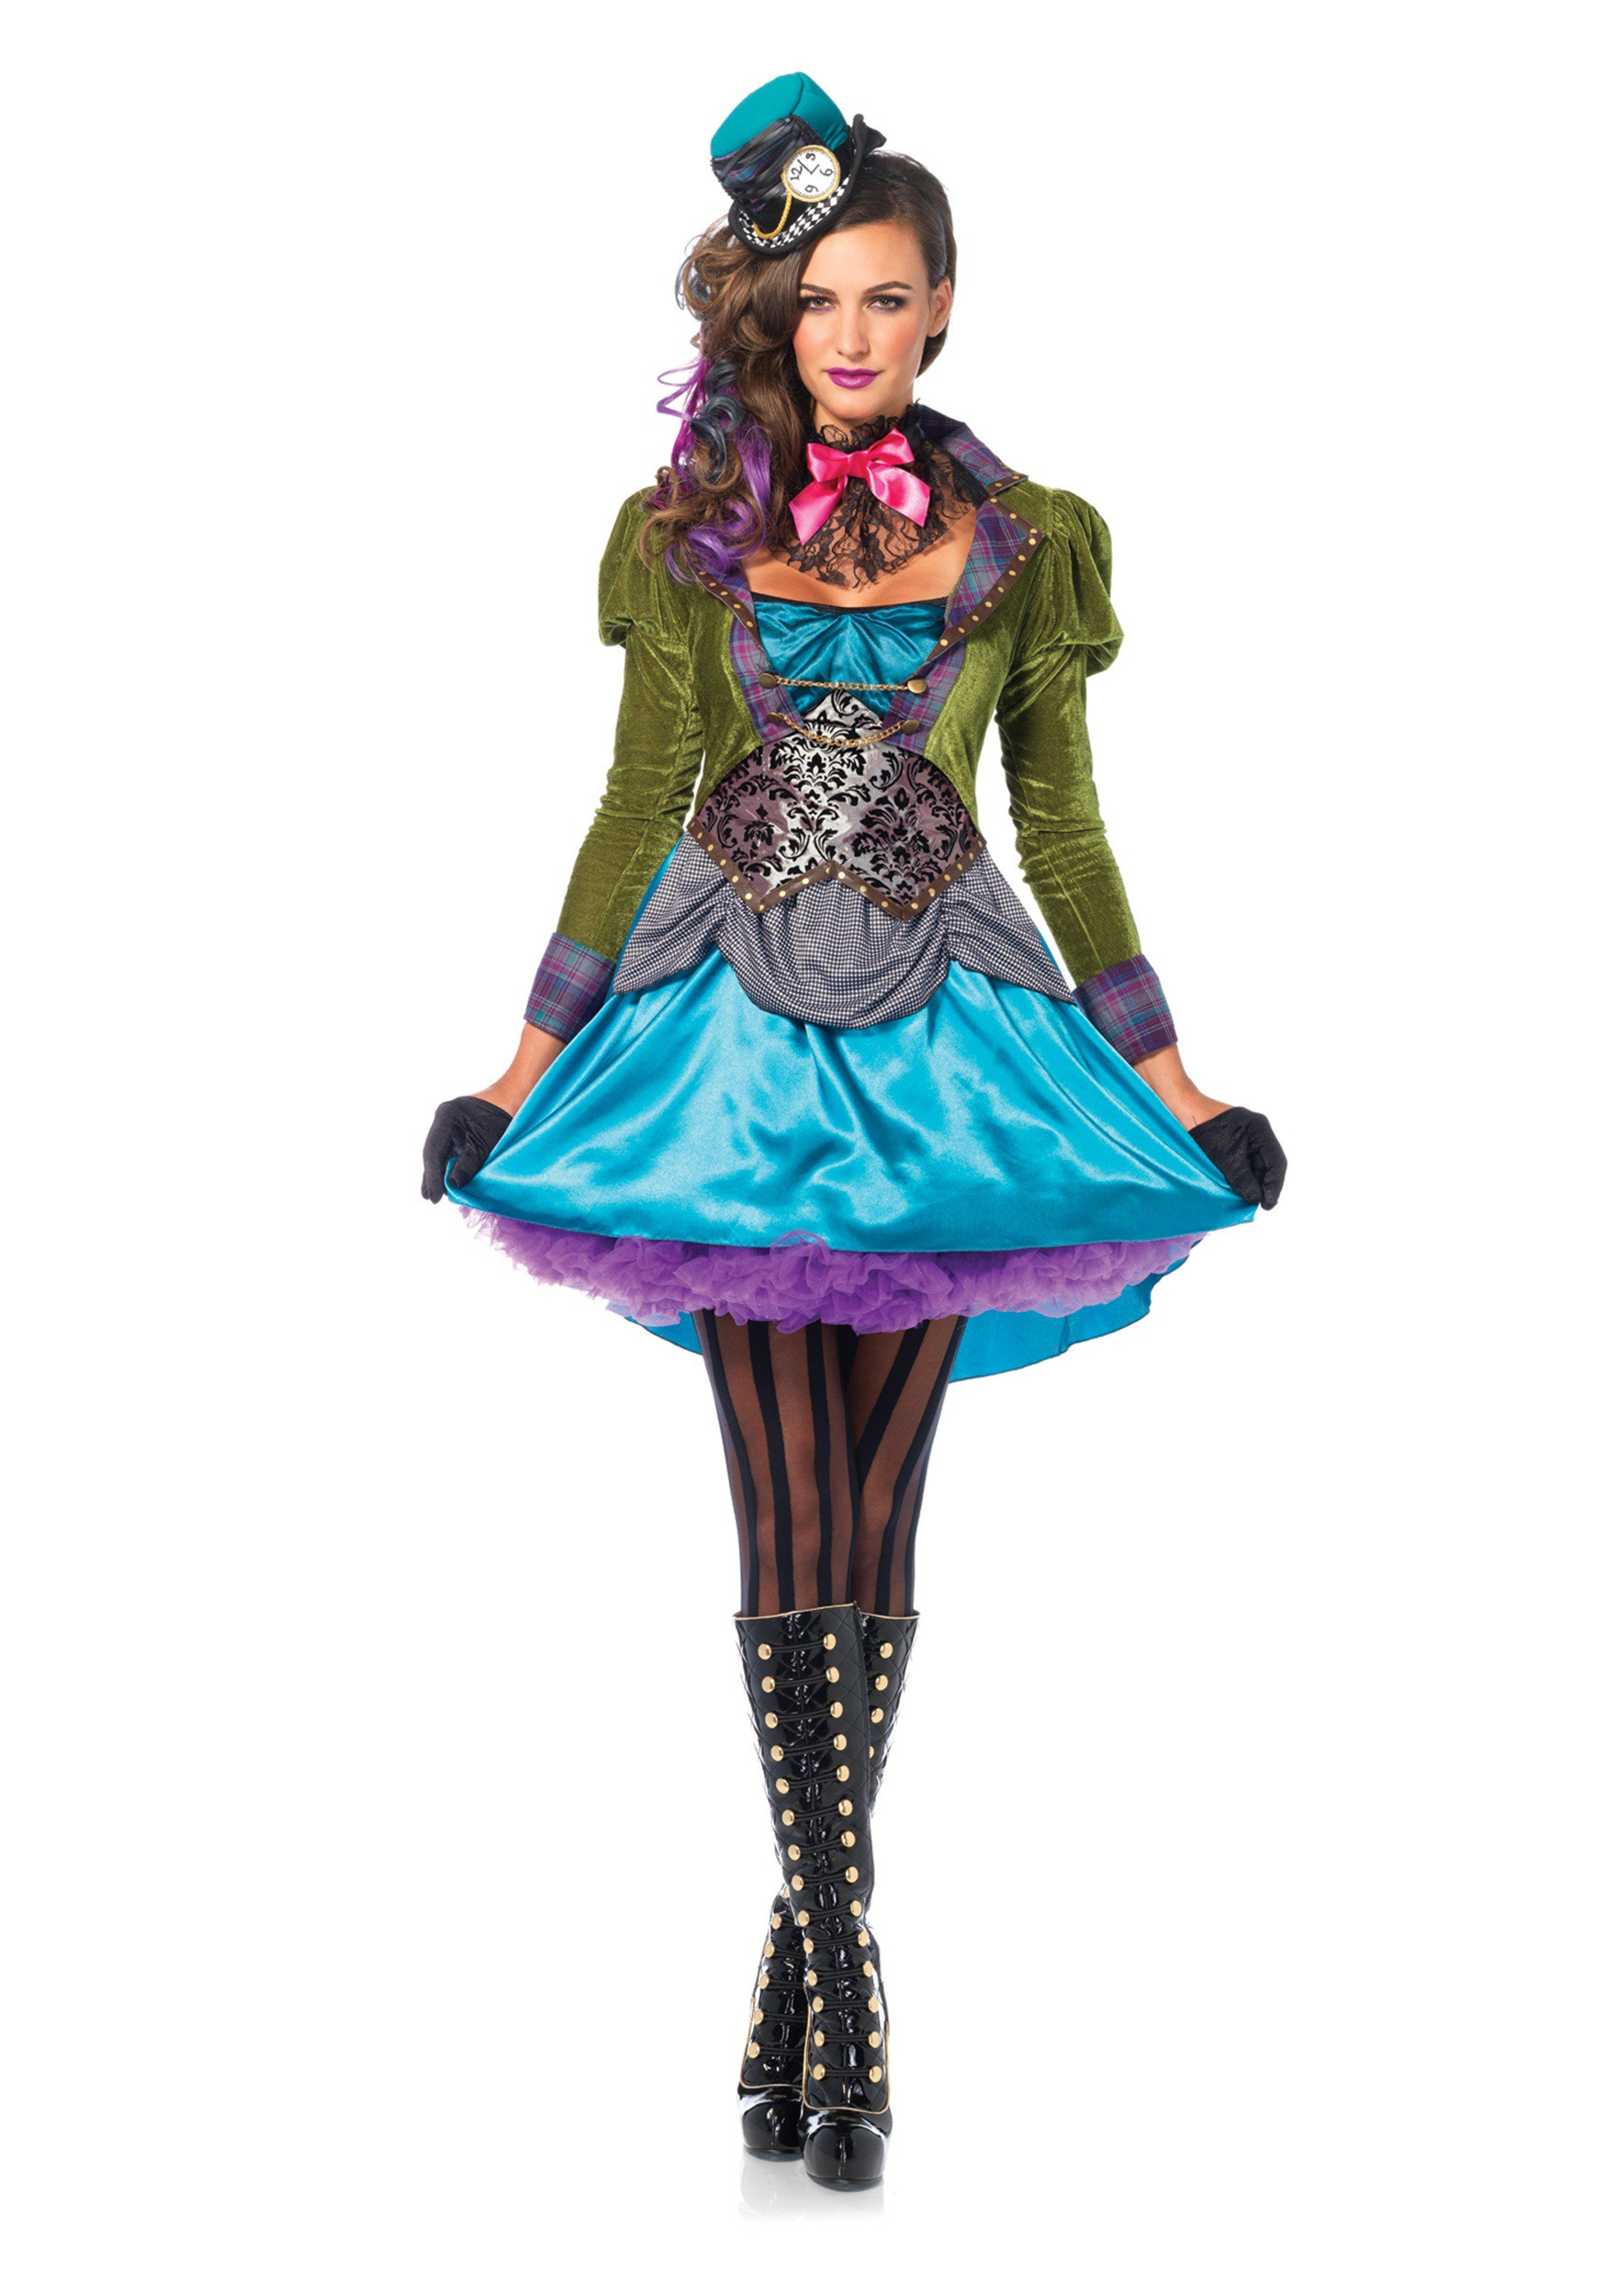 Mad Hatter Costumes - Alice in Wonderland Mad Hatter Halloween Costume 33d9d860e03